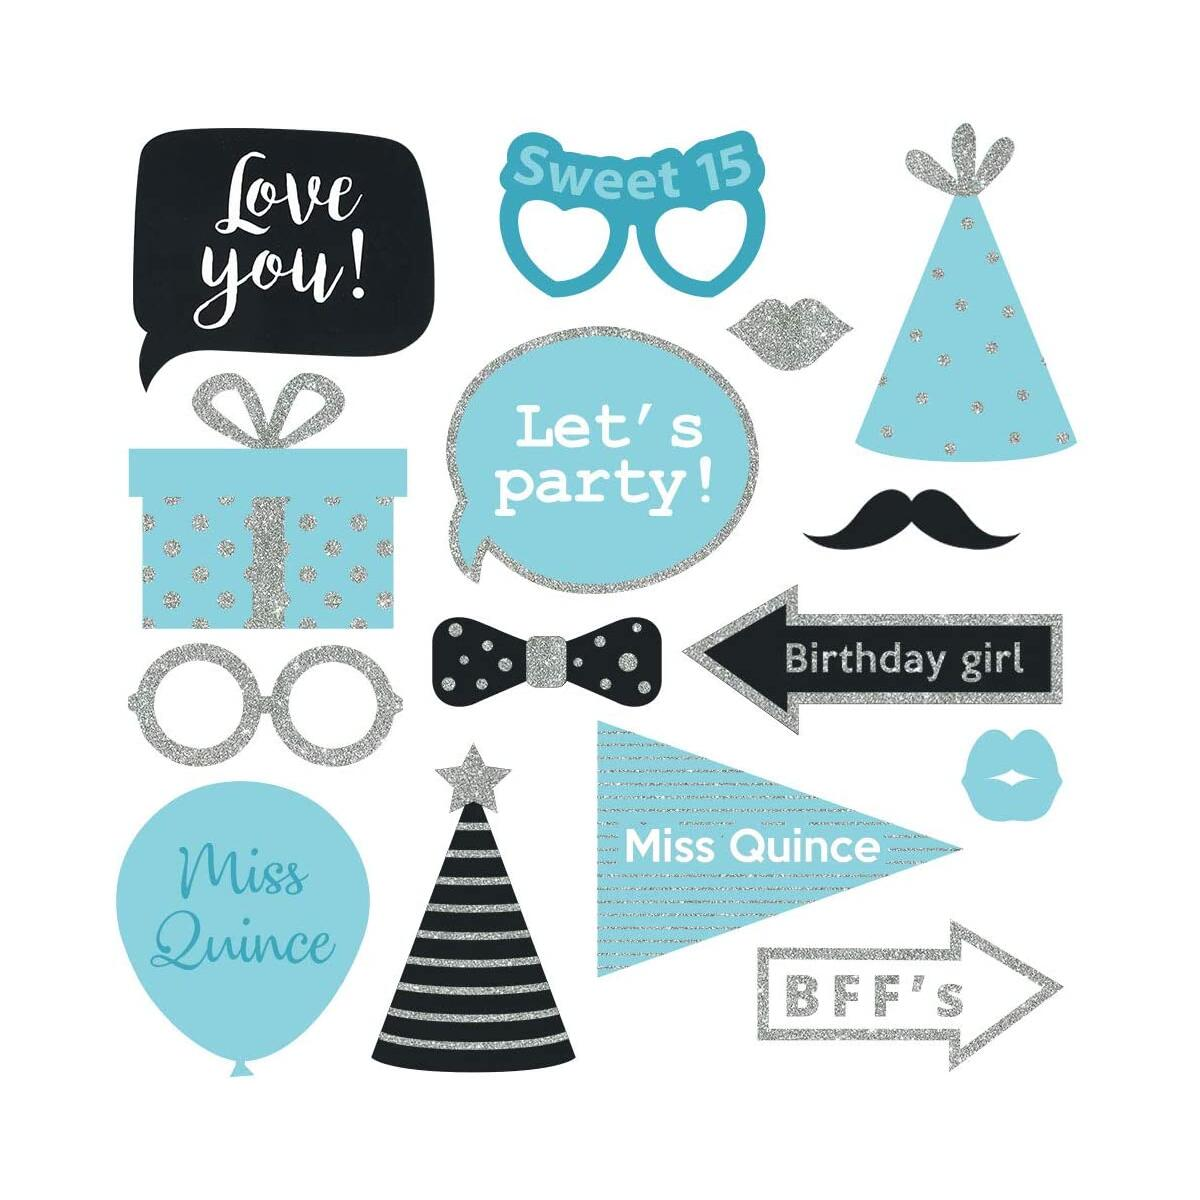 Fully Assembled 15 Birthday Quinceanera Photo Booth Props - Set of 30 - Teal Blue & Silver Quince Selfie Signs - Cute 15th Party Supplies & Decorations with Real Glitter - Did we mention no DIY?